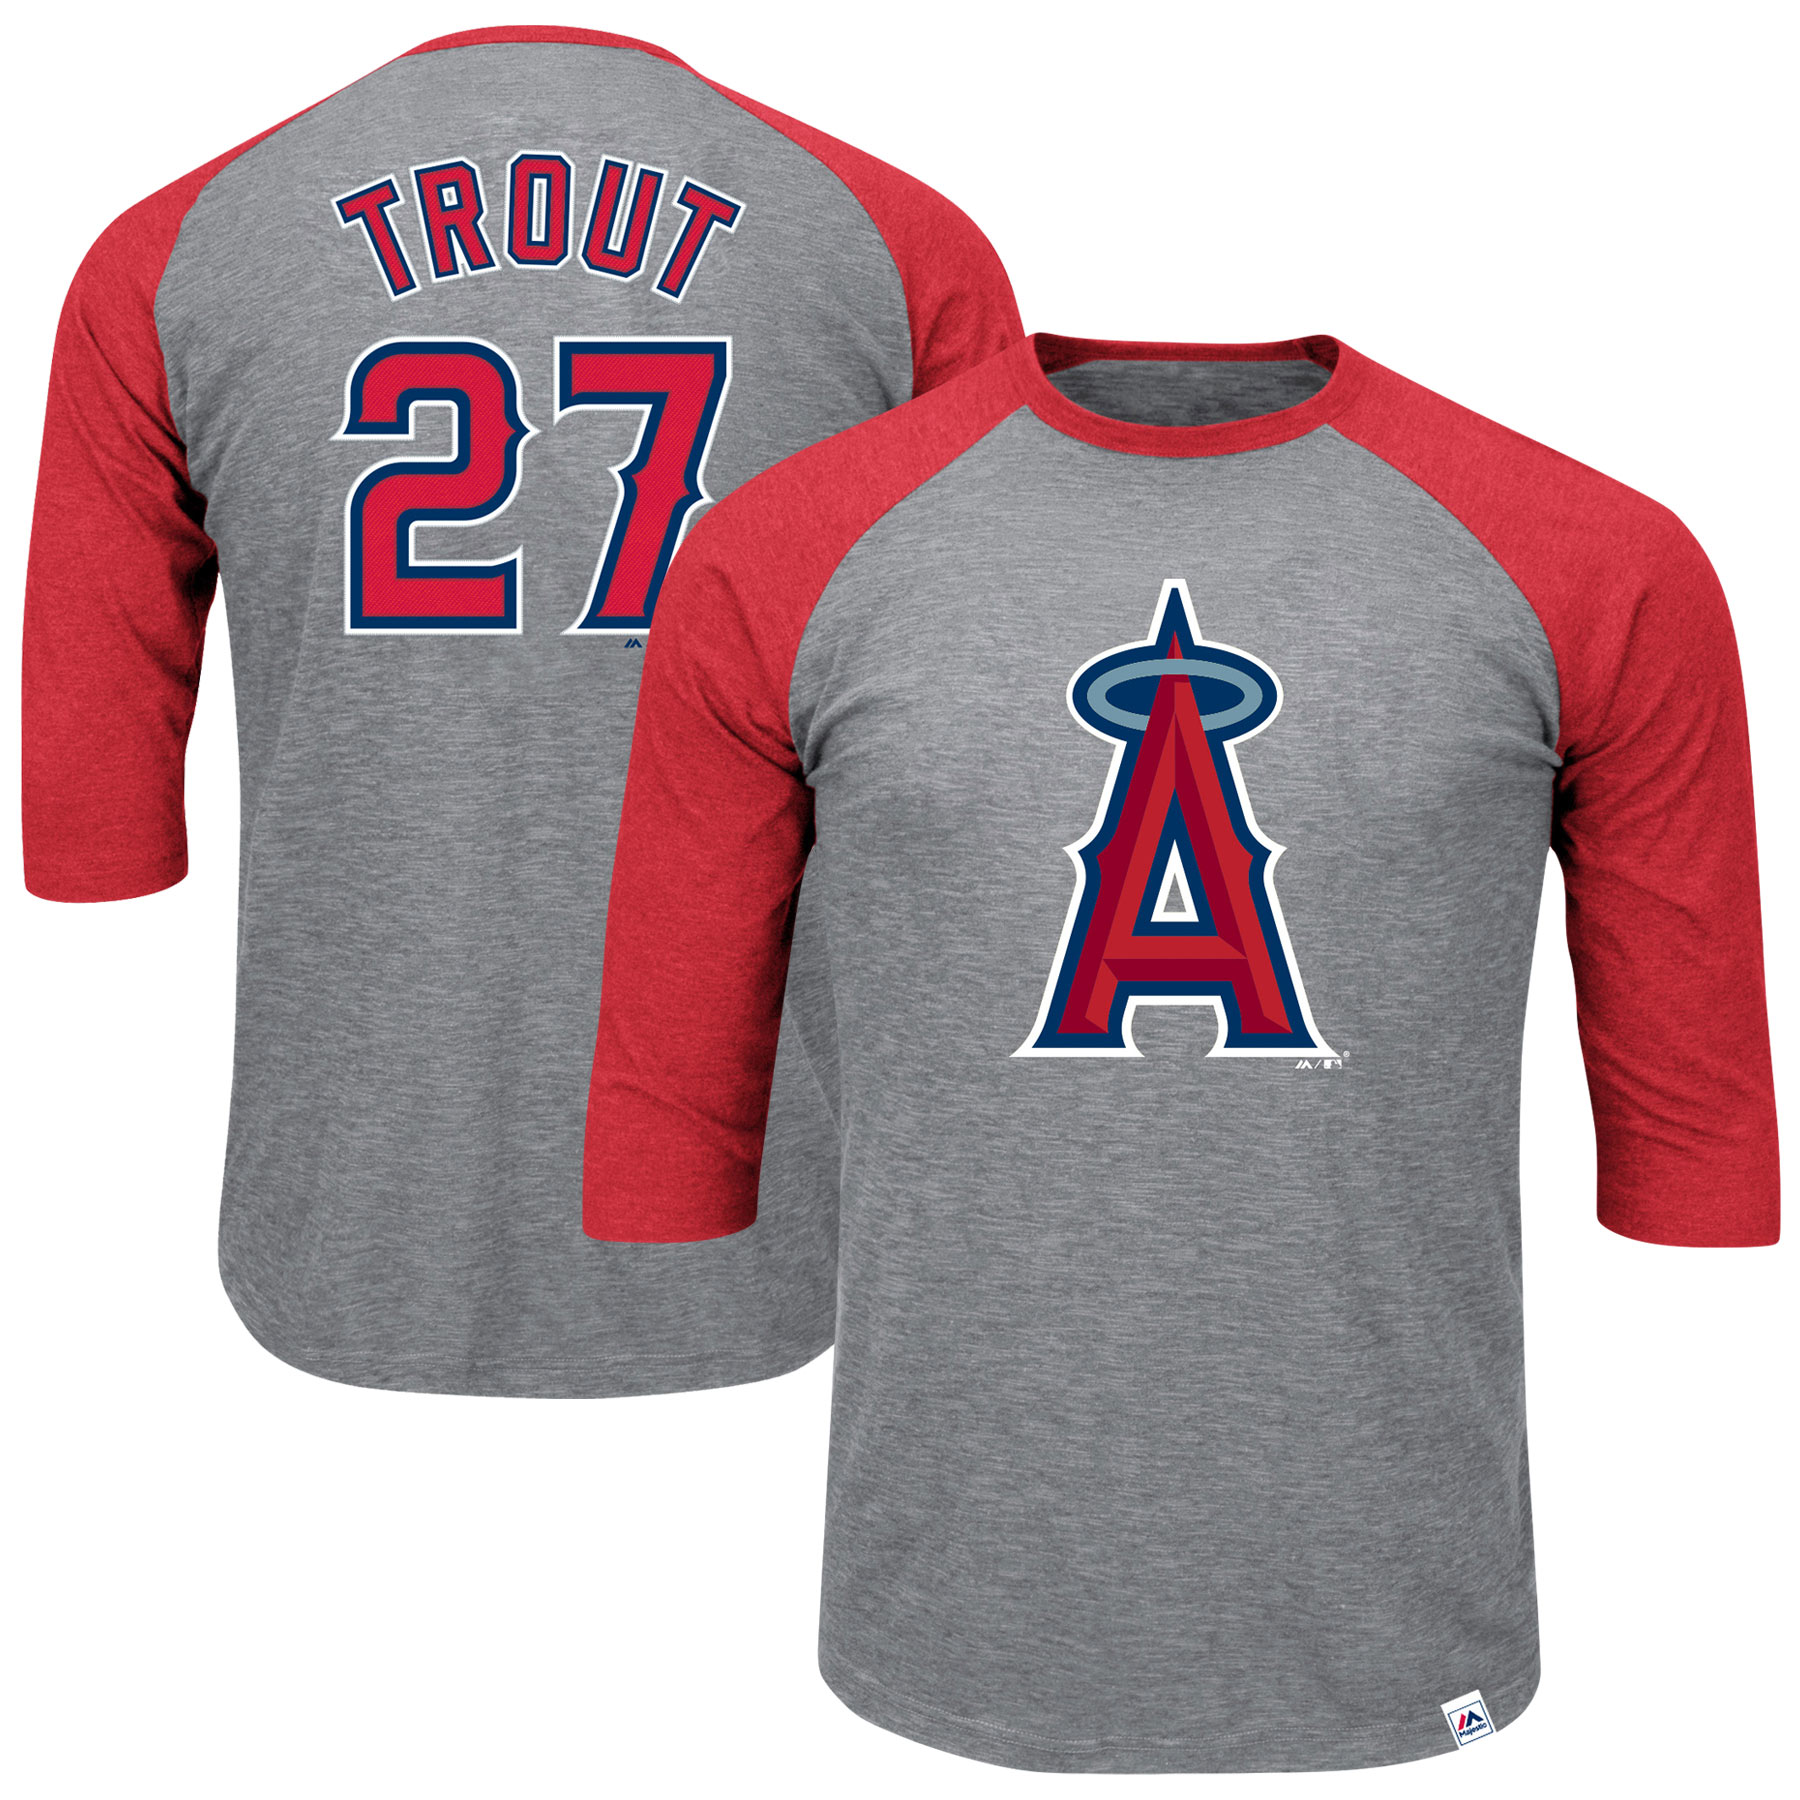 Mike Trout Los Angeles Angels Majestic Big & Tall Player Raglan 3/4-Sleeve T-Shirt - Heathered Gray/Red